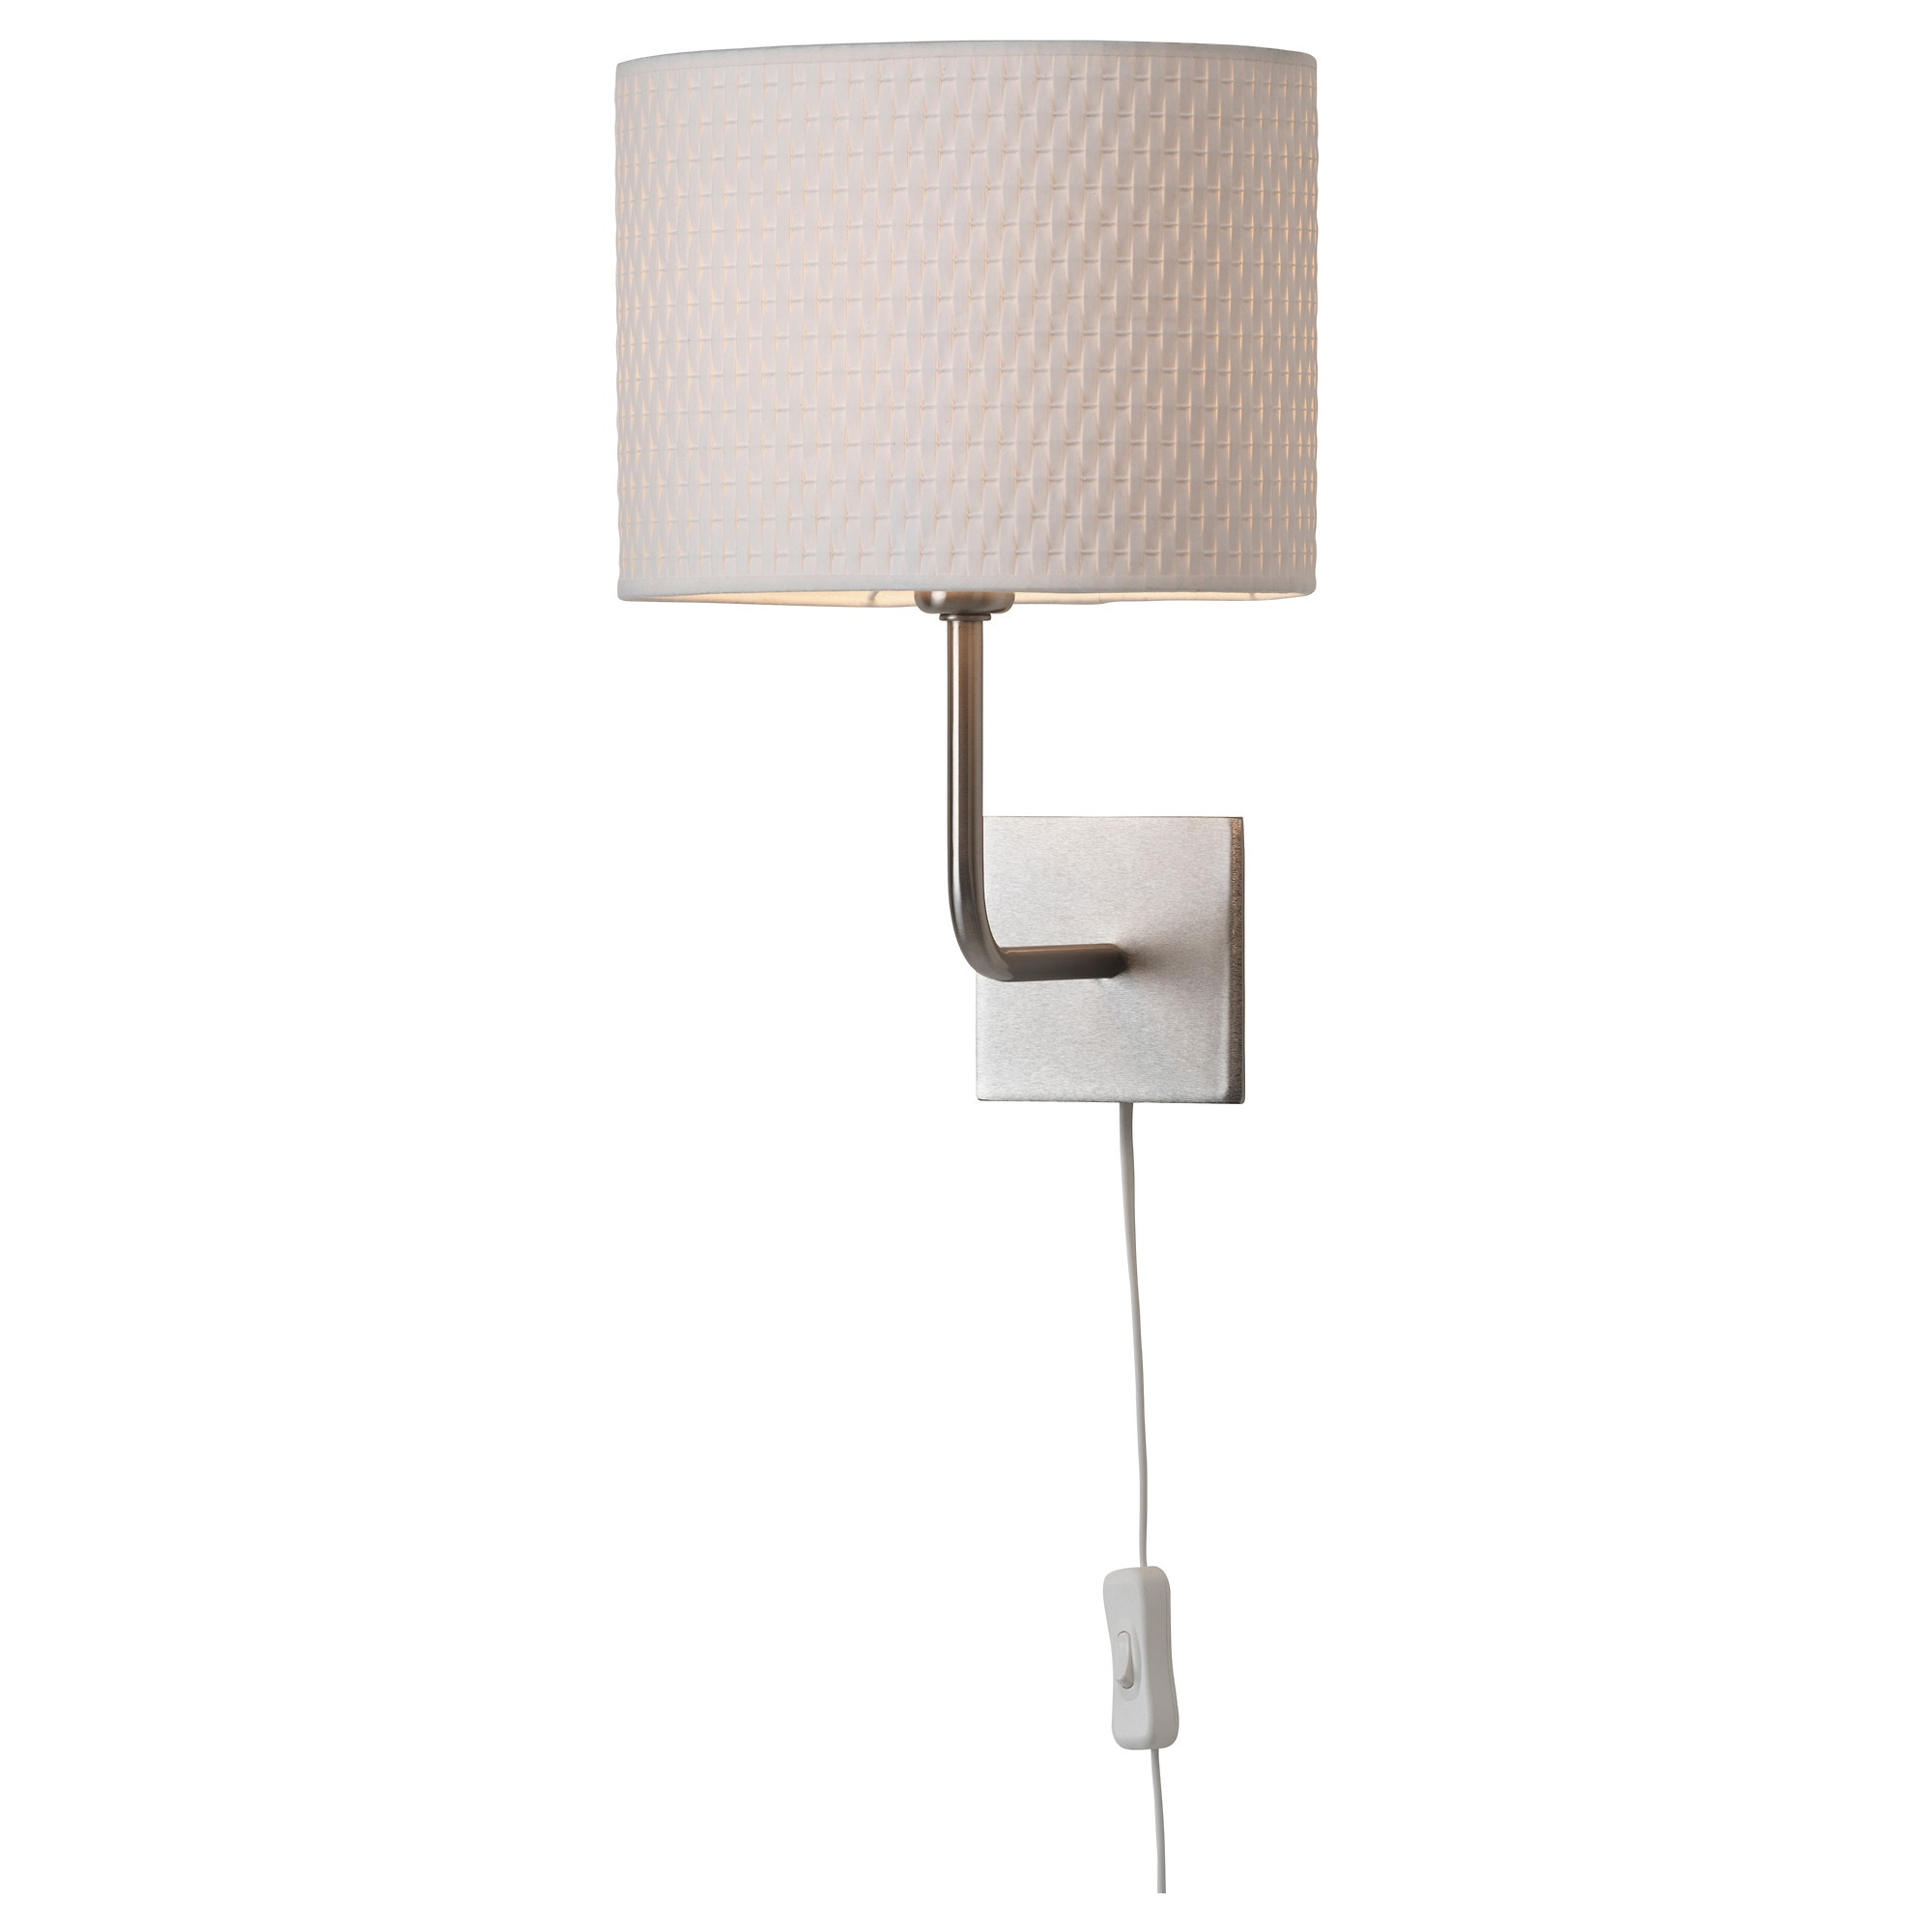 . AL NG Wall lamp     IKEA